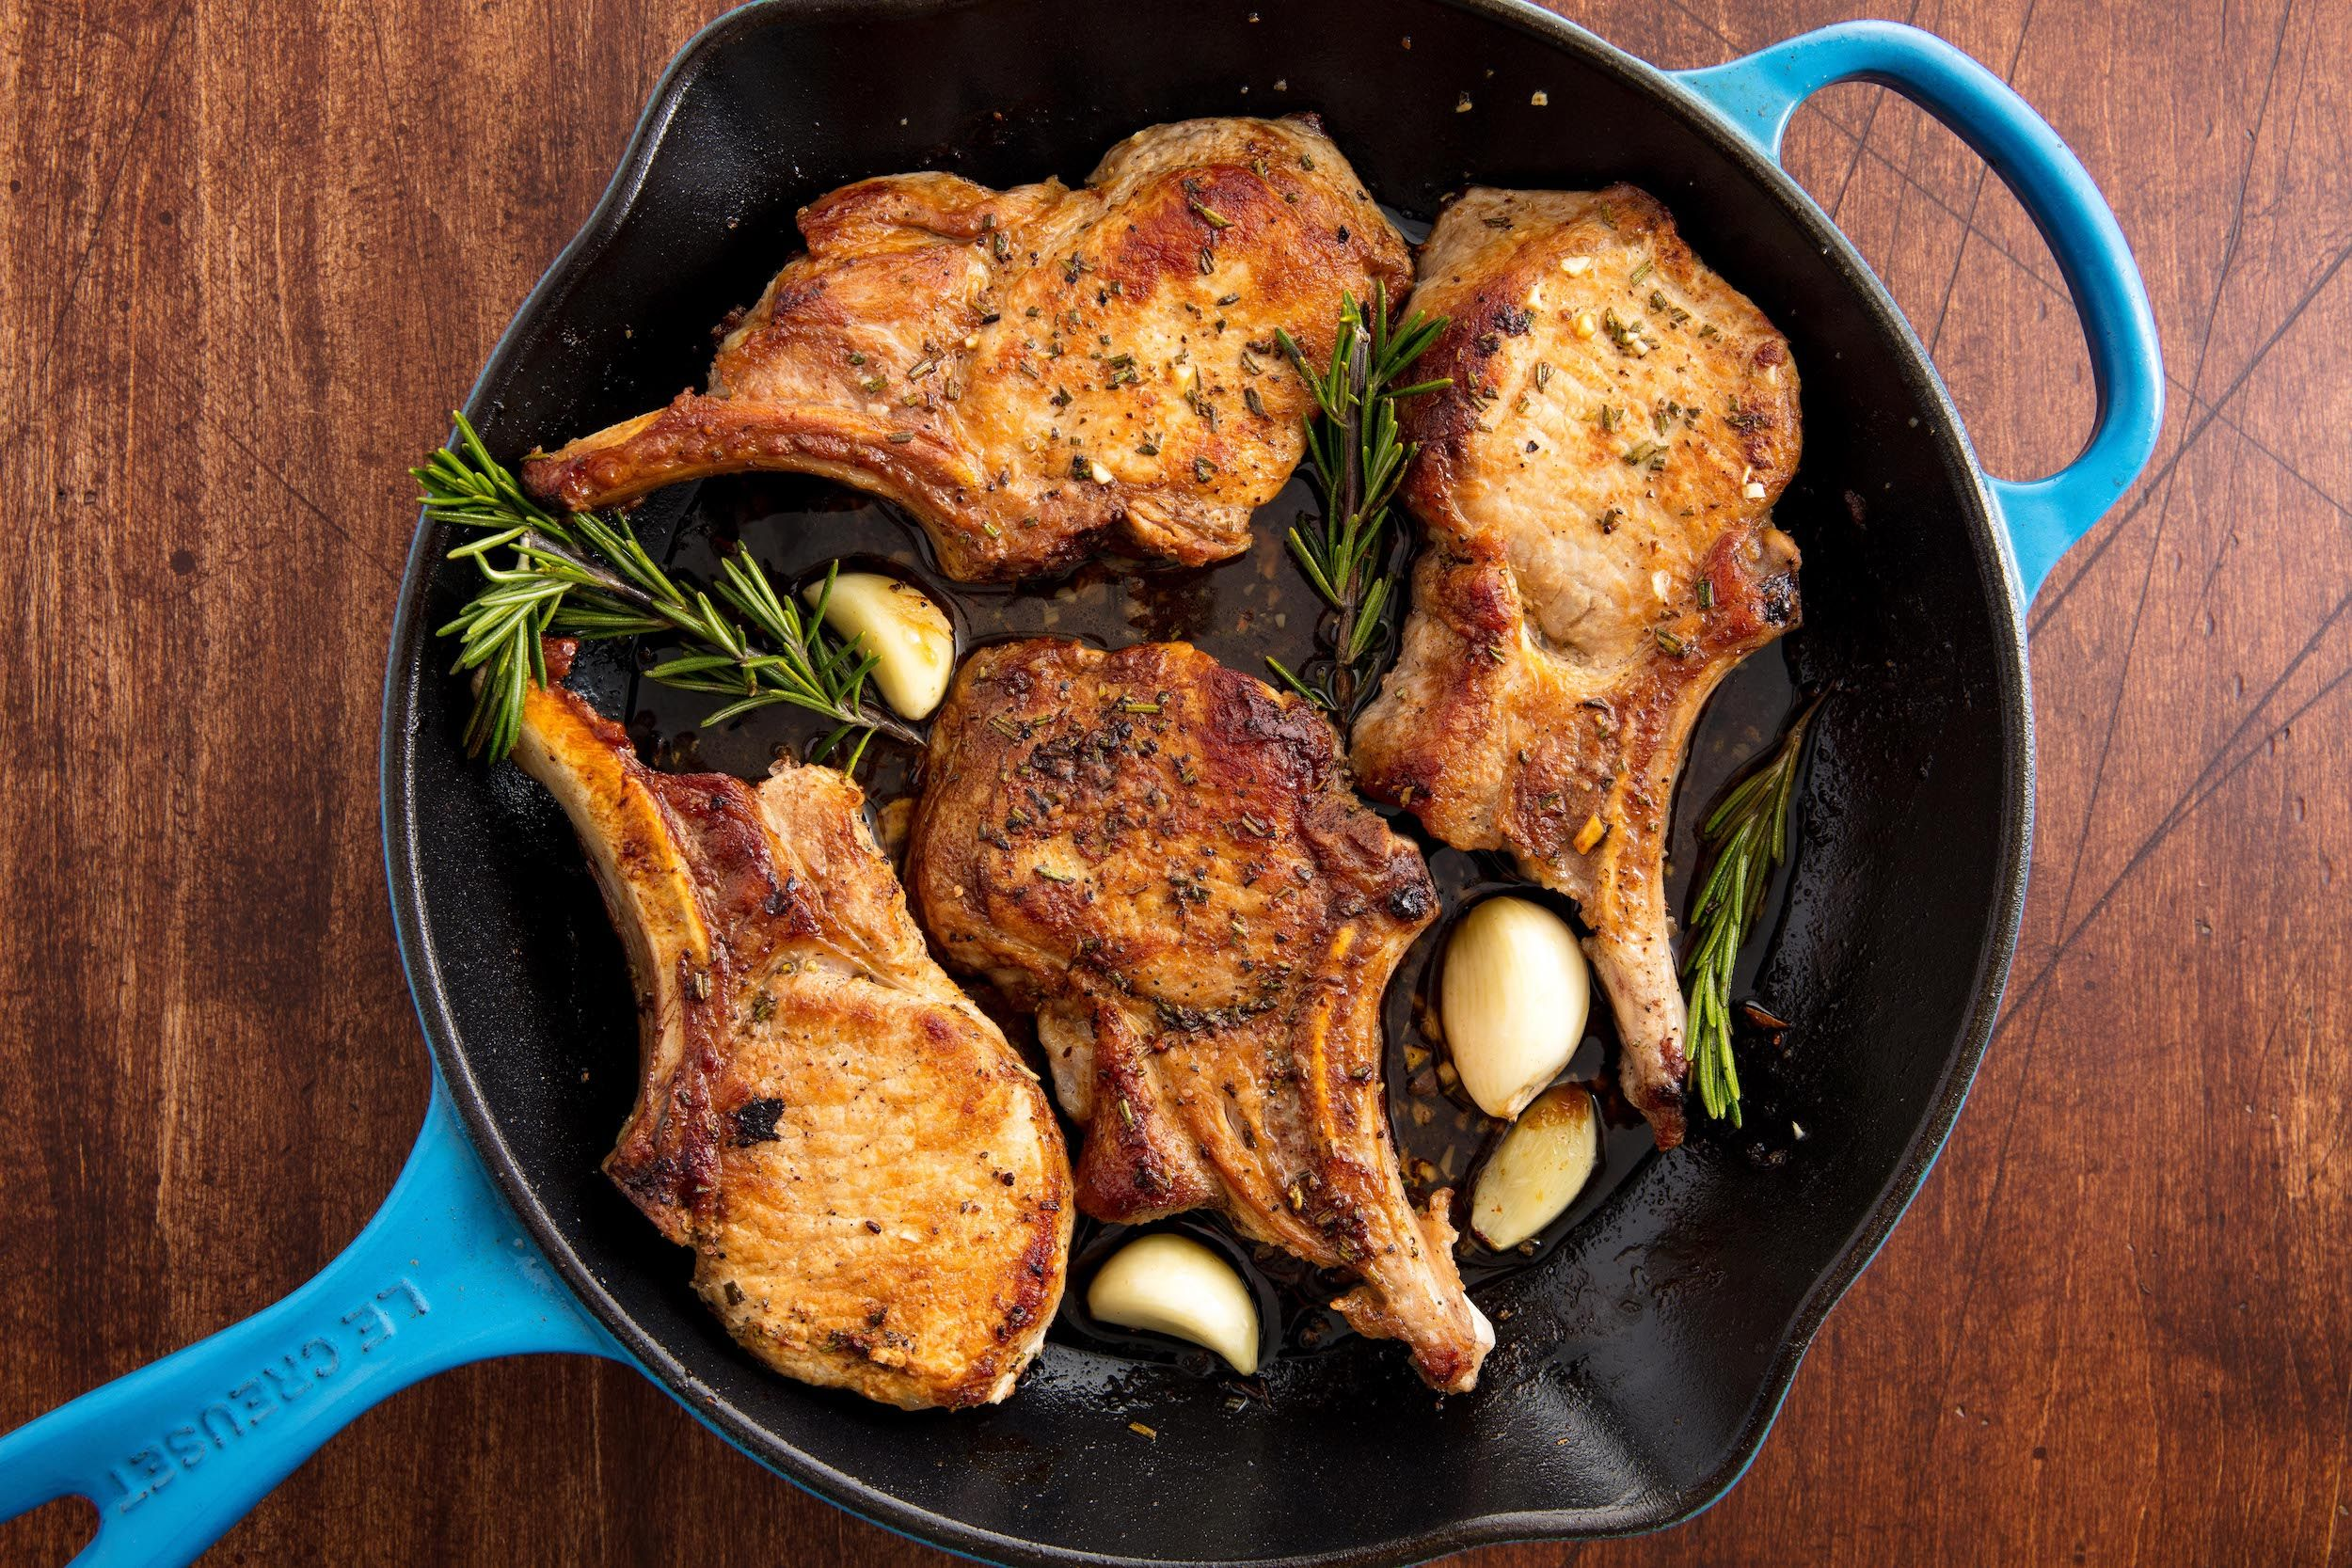 Best Oven Baked Pork Chop Recipe - How to Make Garlic Rosemary ...